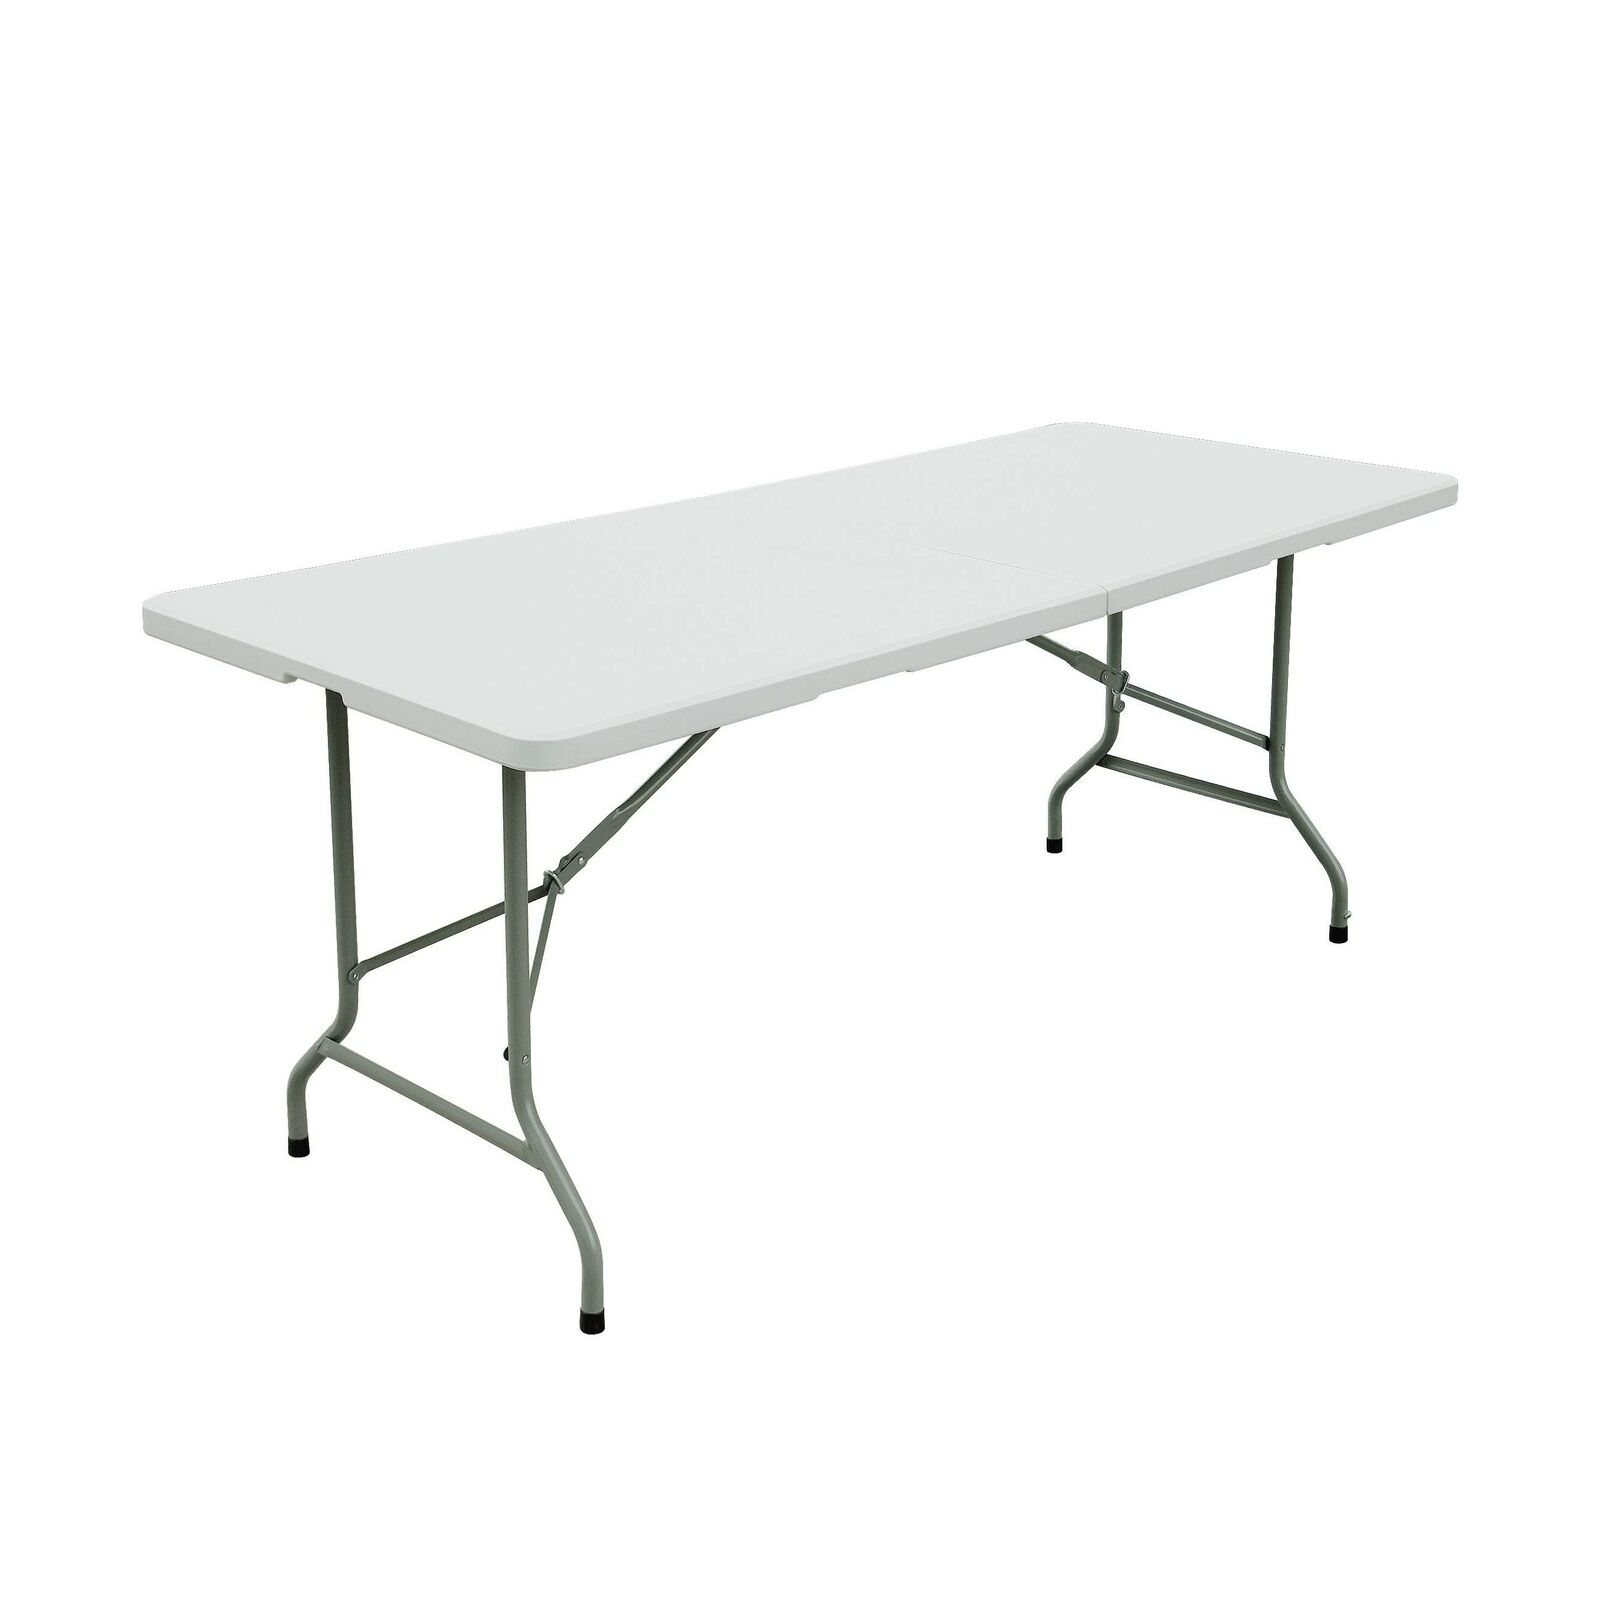 Forup Folding Utility Table 6ft Fold In Half Portable Plastic Picnic Party Camp For Sale Online Ebay